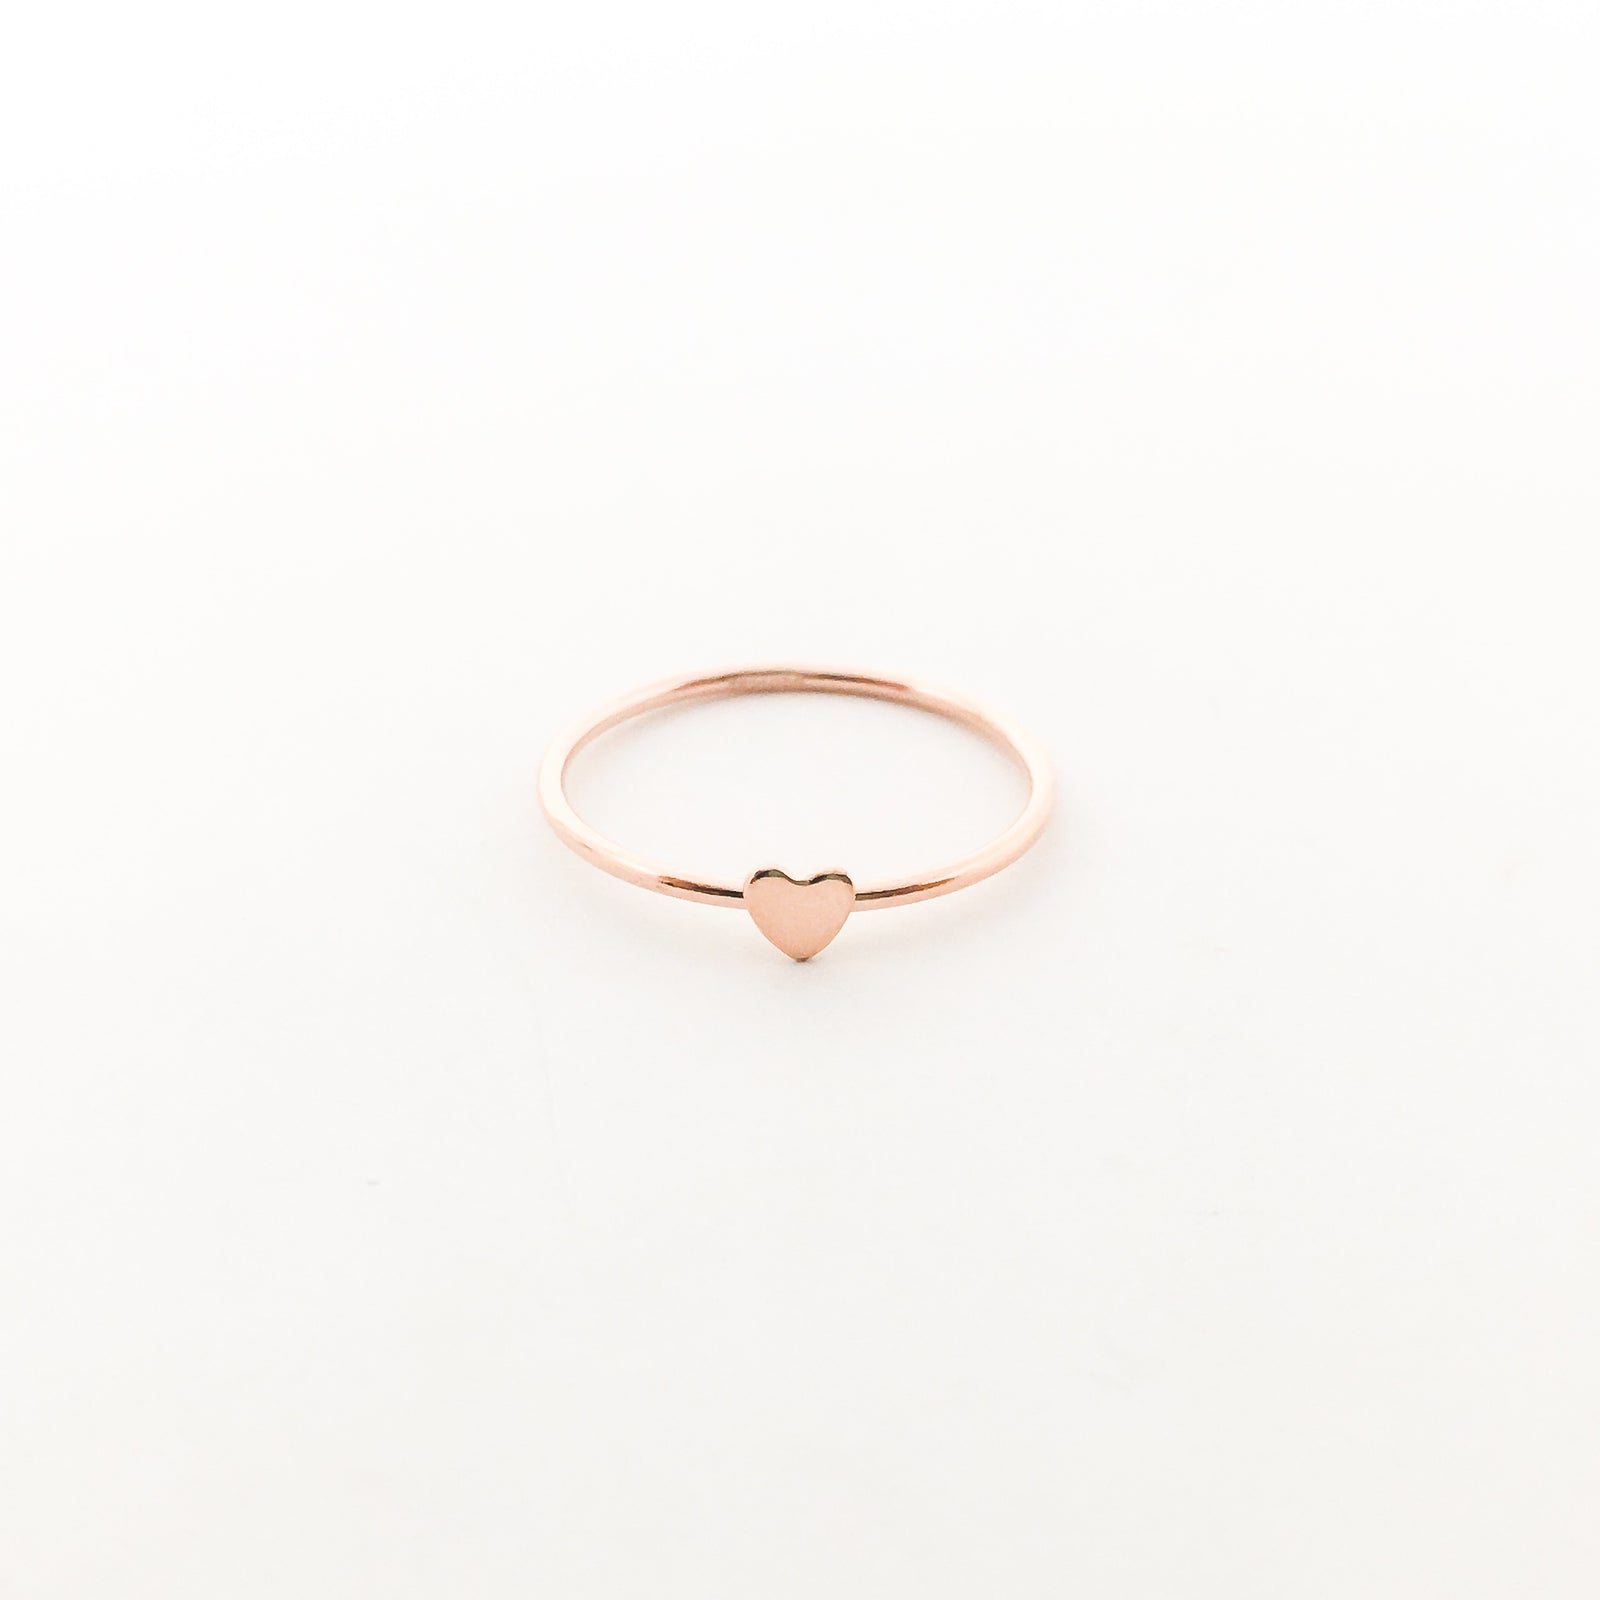 14K ROSE GOLD-FILLED HEART STACKING RINGS | SIZE OPTIONS